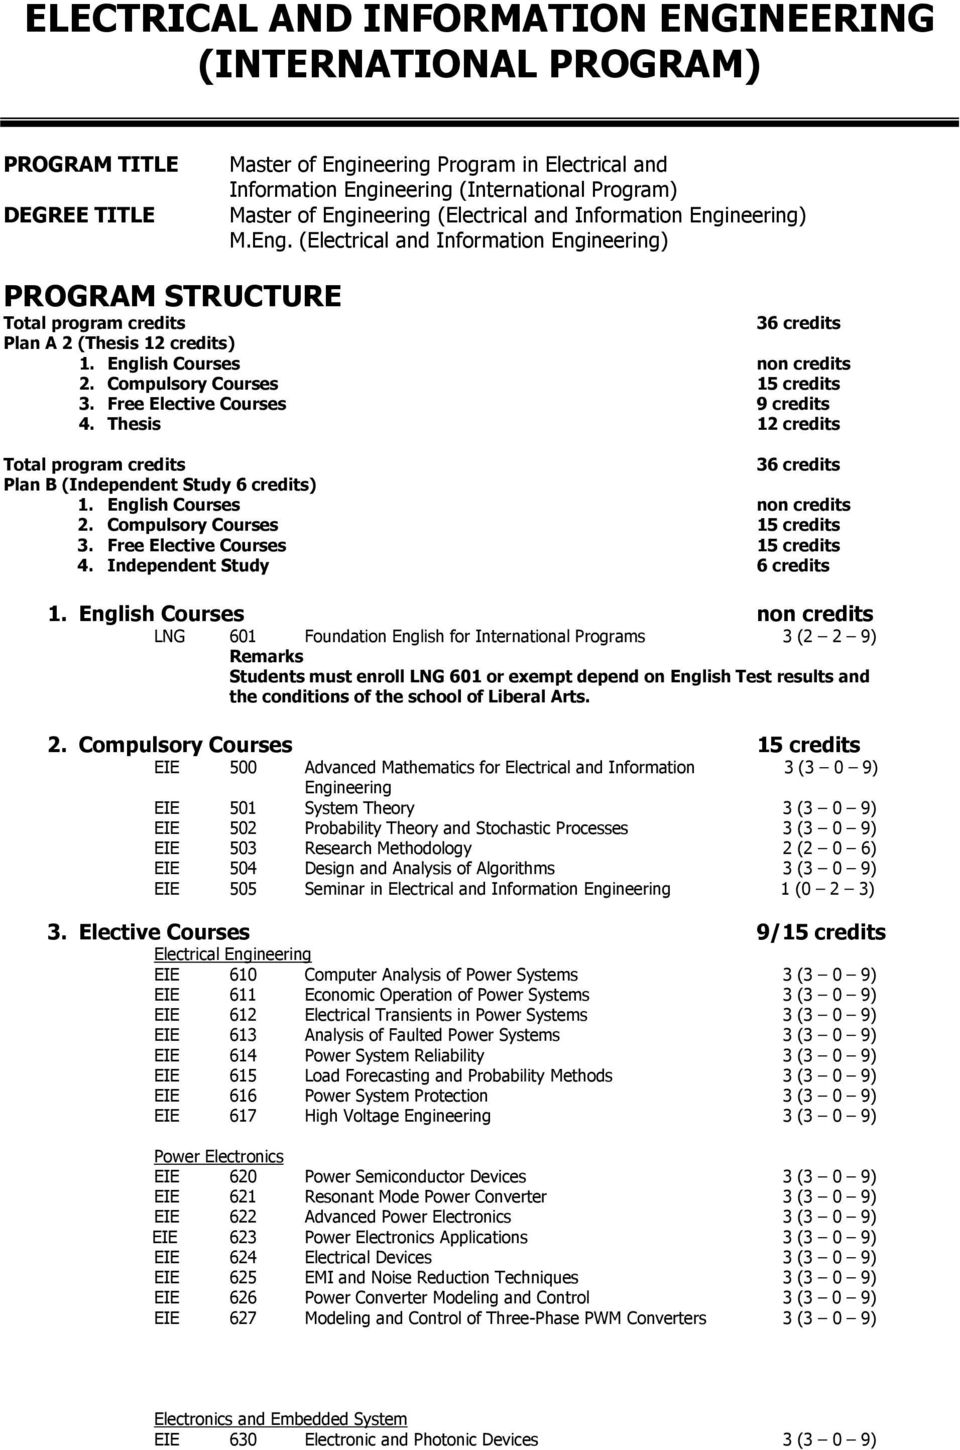 Electrical And Information Engineering International Program Pdf Plan B English Courses Non Credits 2 Compulsory 15 3 Free Elective 9